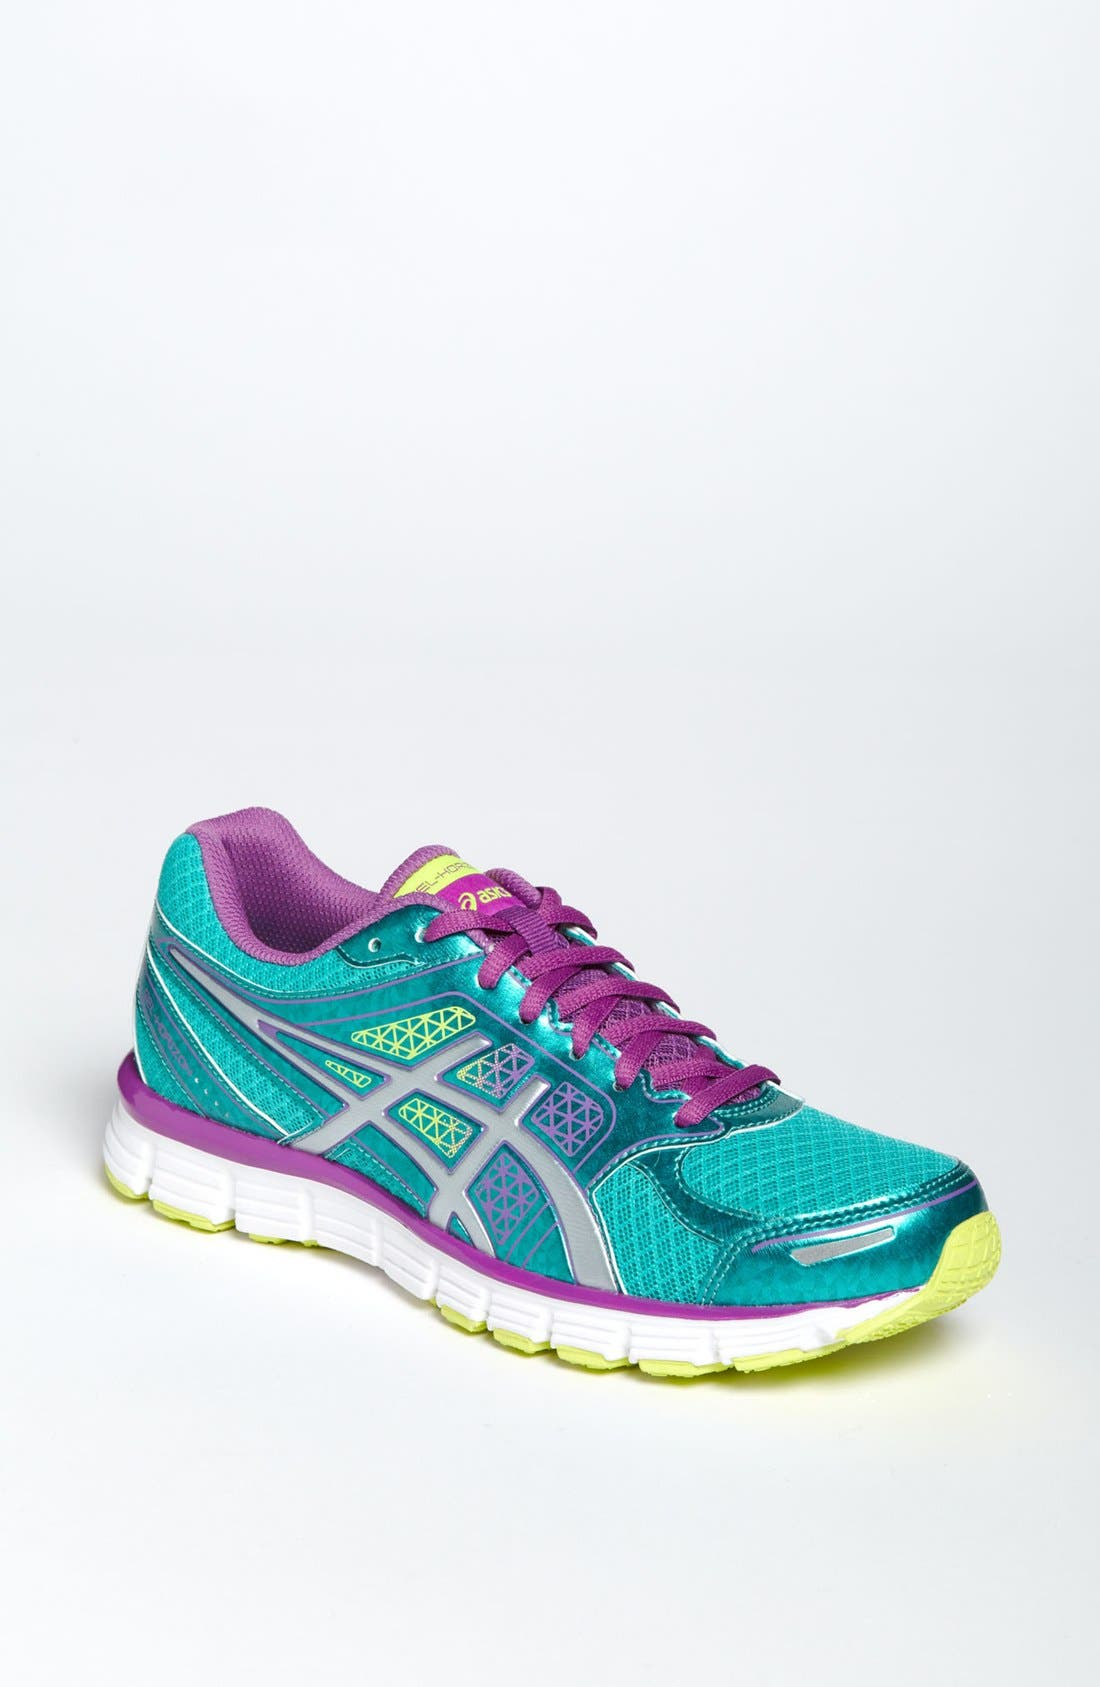 Alternate Image 1 Selected - ASICS® 'GEL-Horizon' Running Shoe (Women)